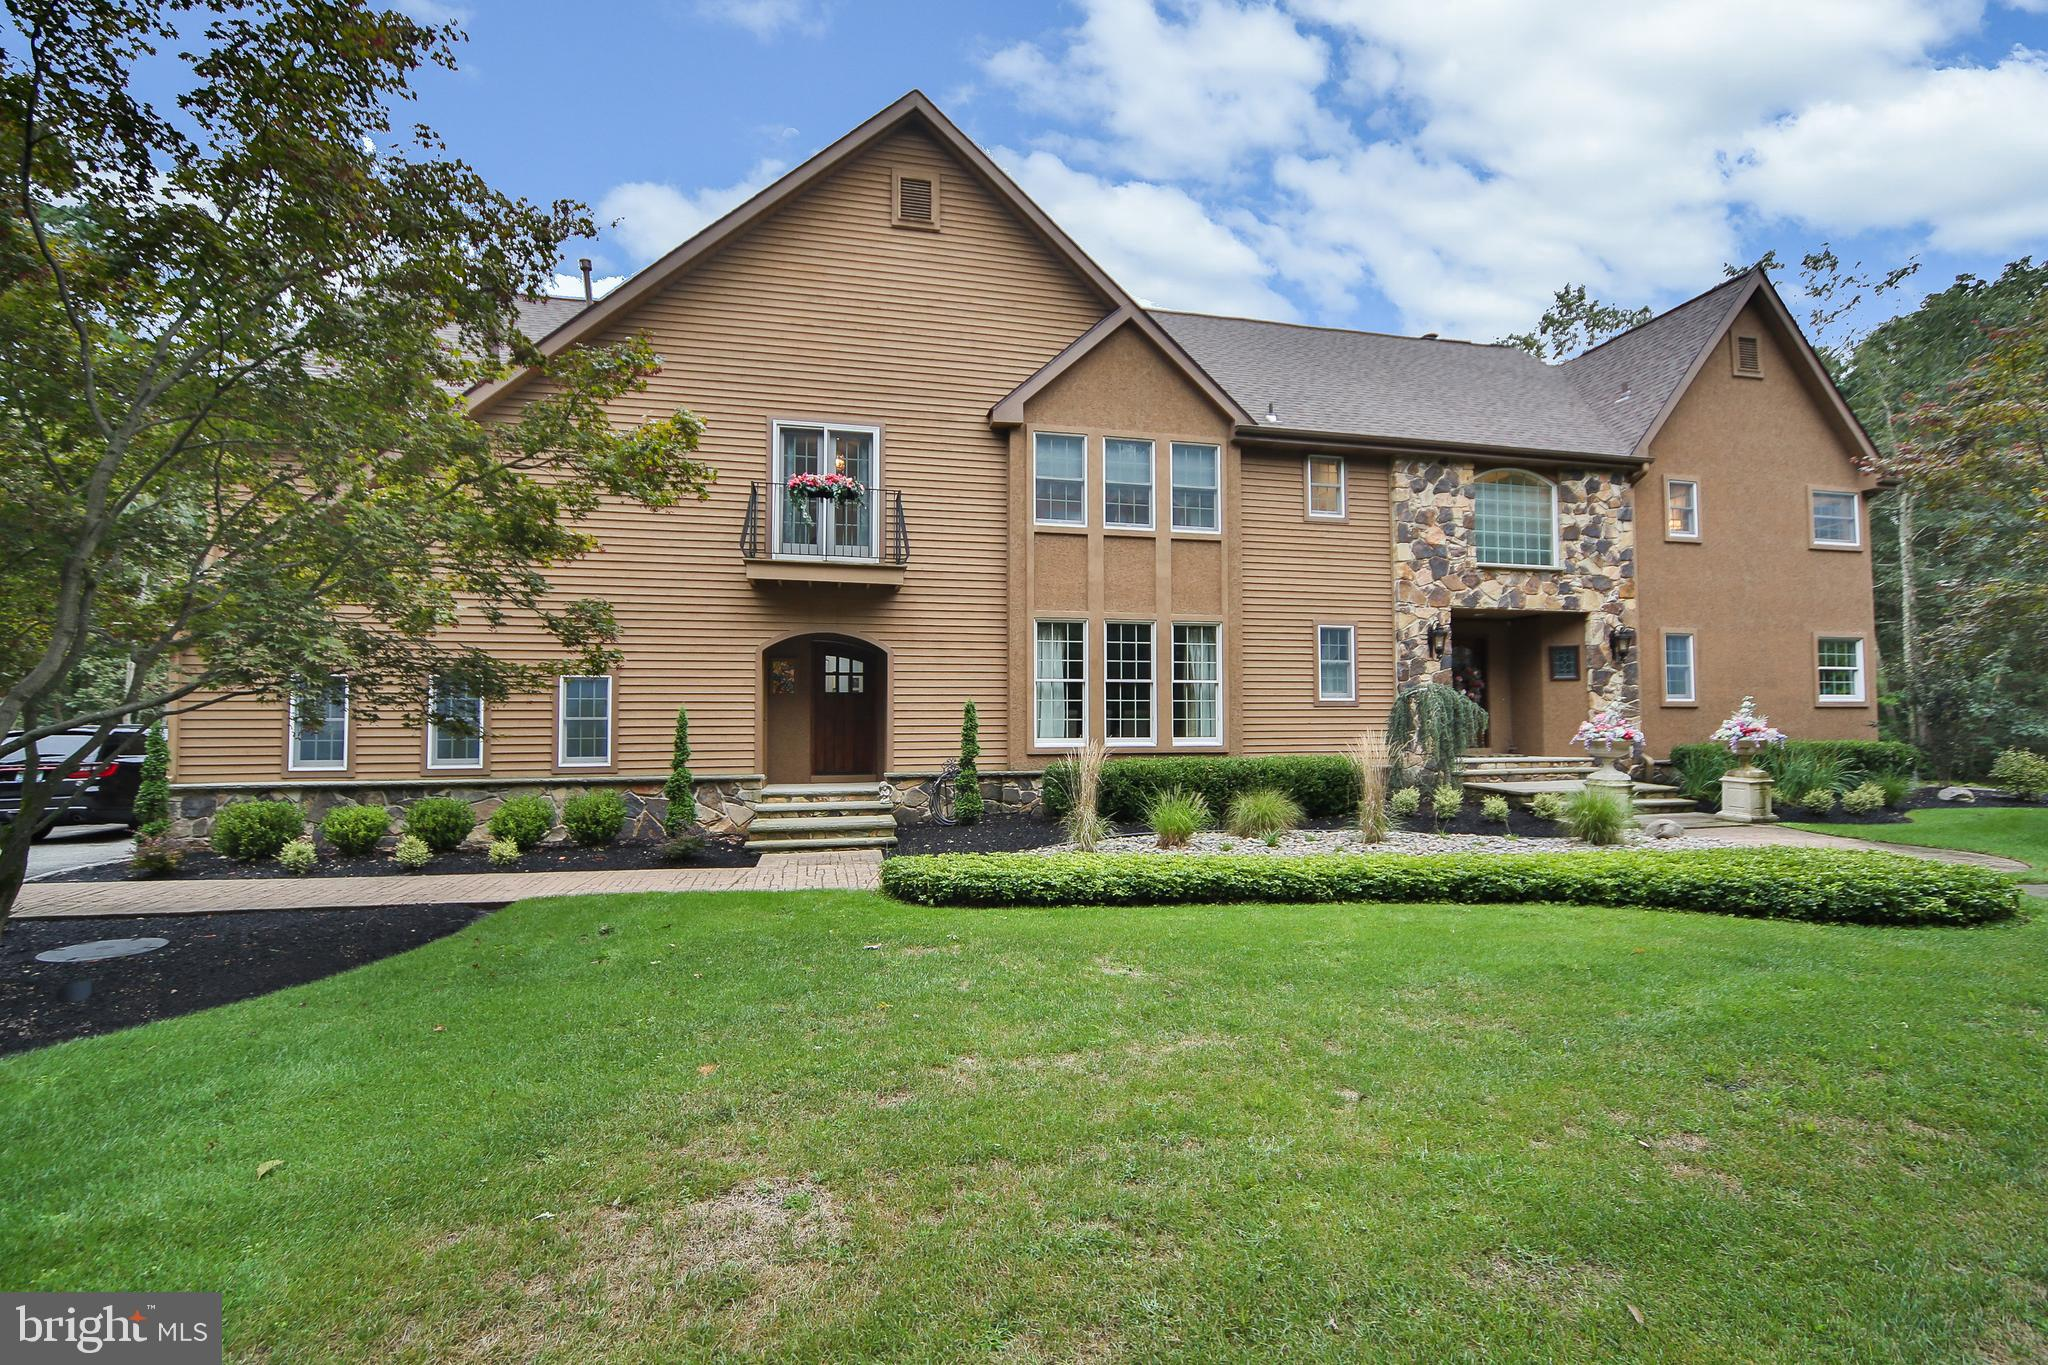 84 GOTTLIEBS FIELD ROAD, MEDFORD, NJ 08055